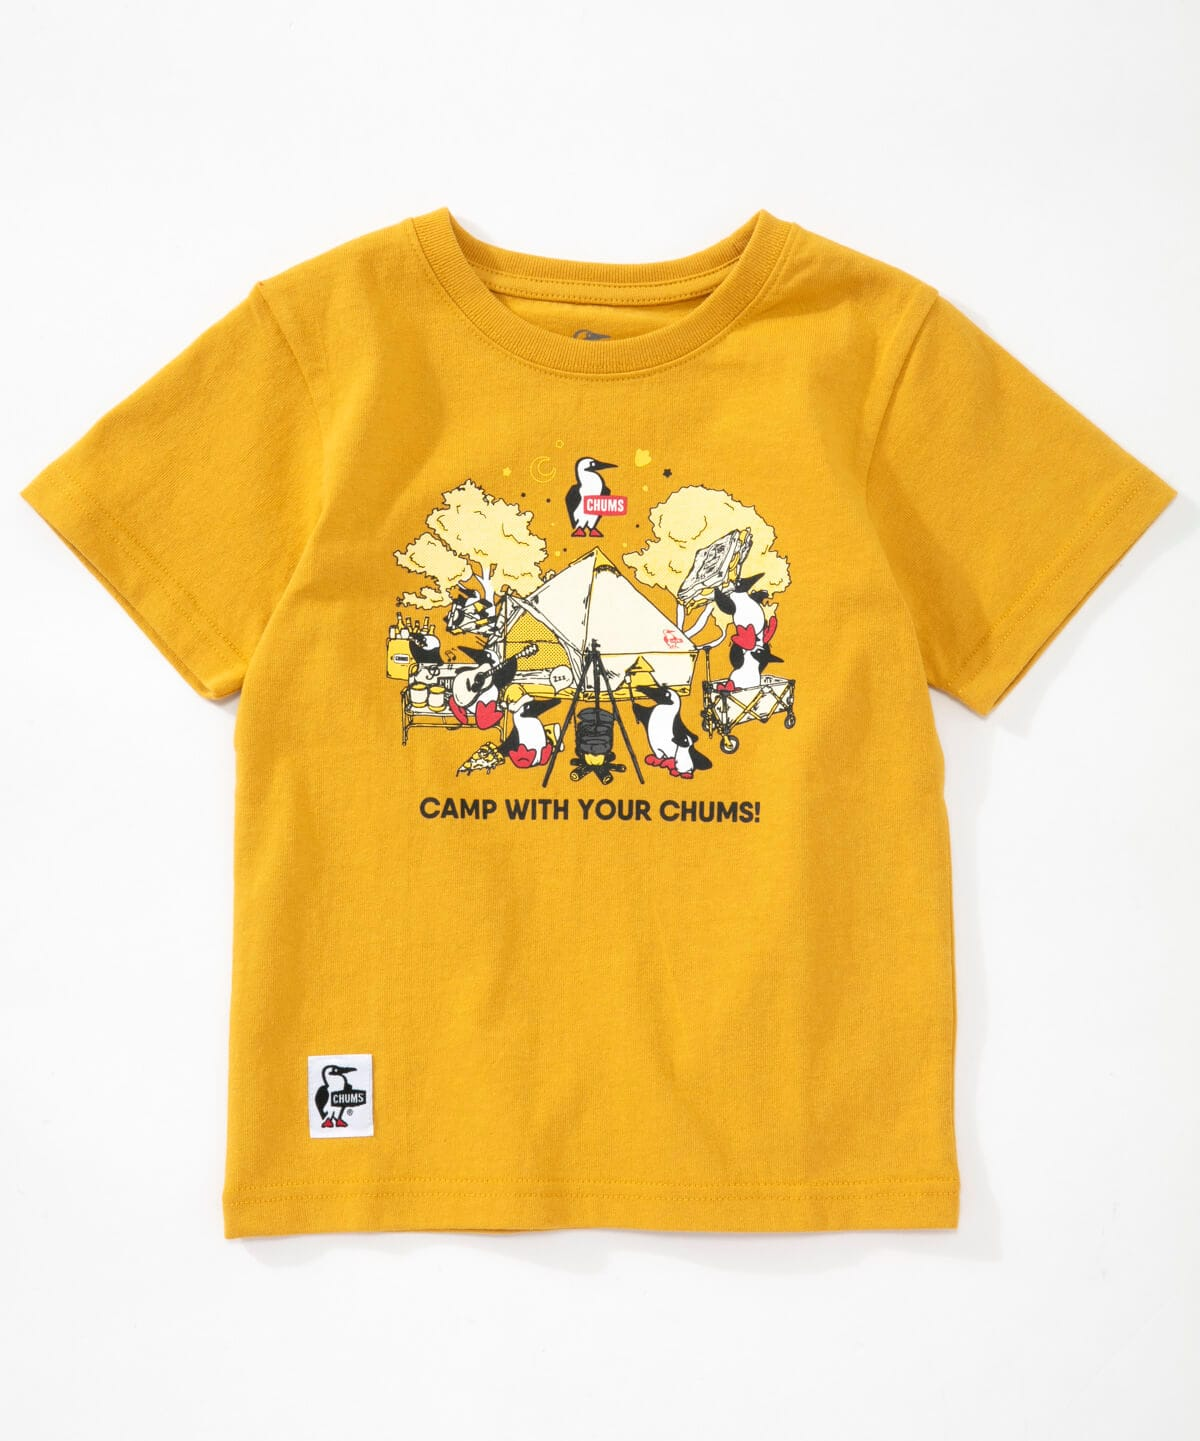 Kid's Camp With Your CHUMS T-Shirt(キッズキャンプウィズユアーチャムスTシャツ(キッズ/Tシャツ))